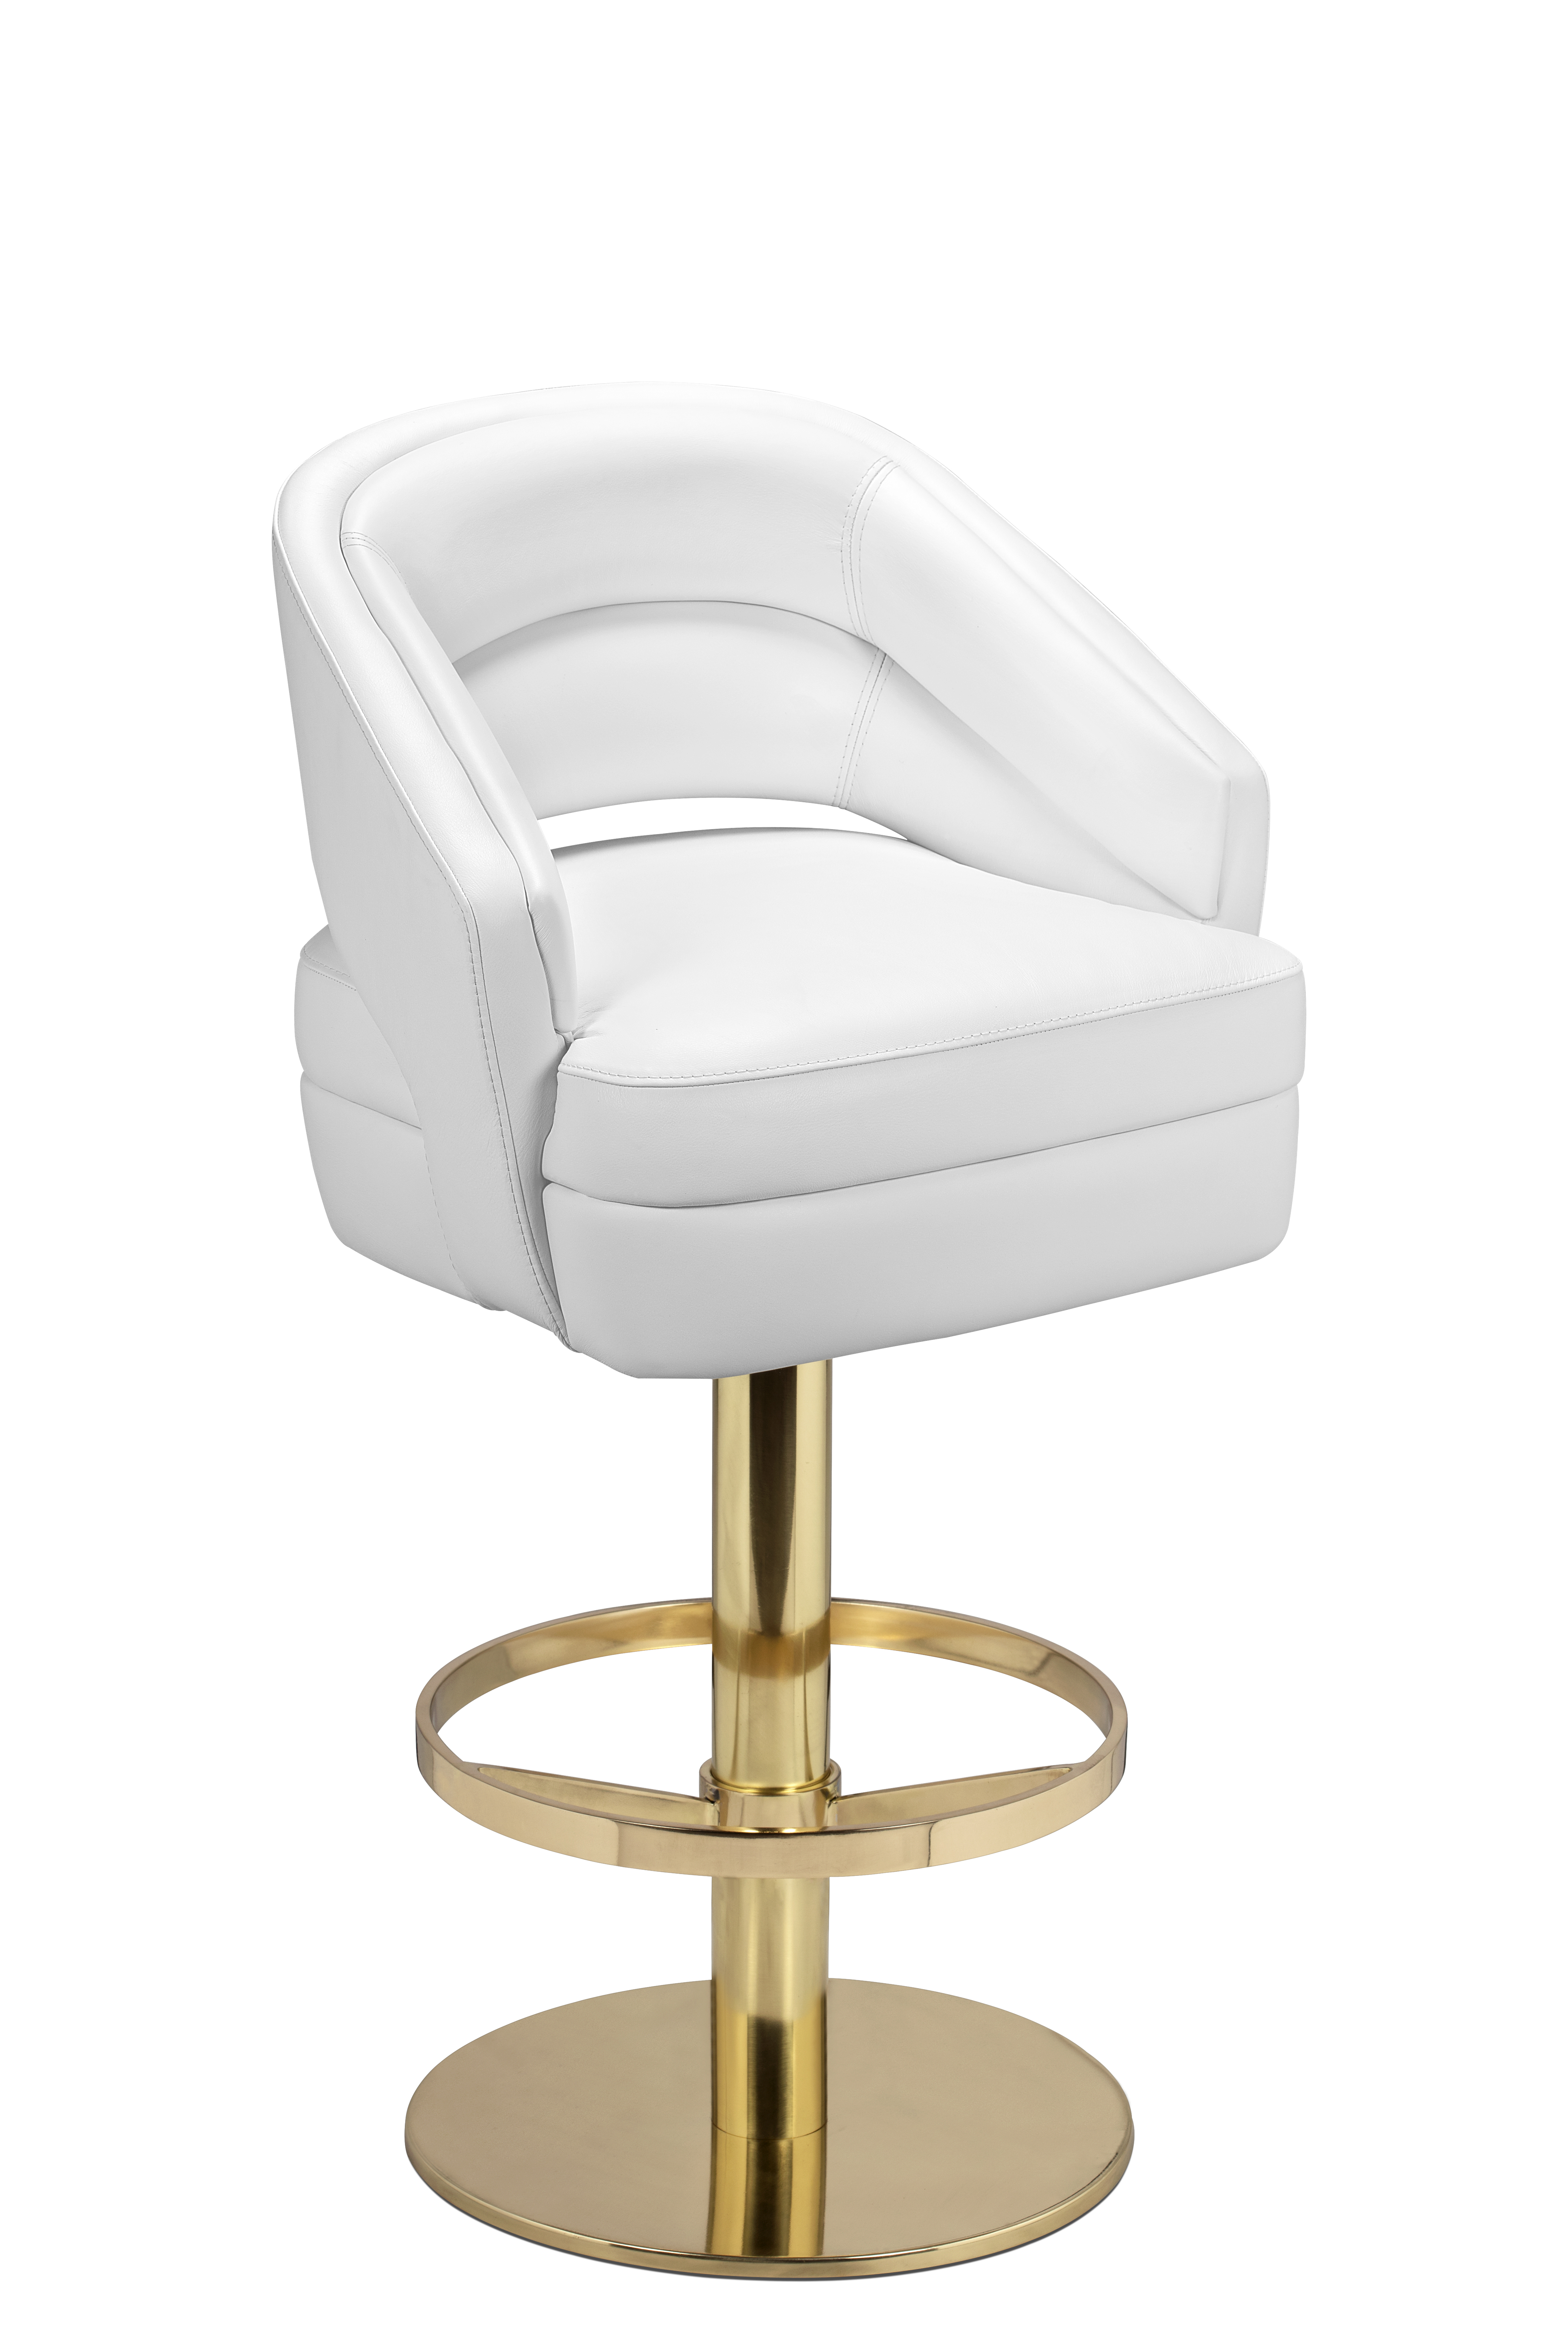 Find Here the Bar Stools with Gold Legs That\'ll Change Your Home ...